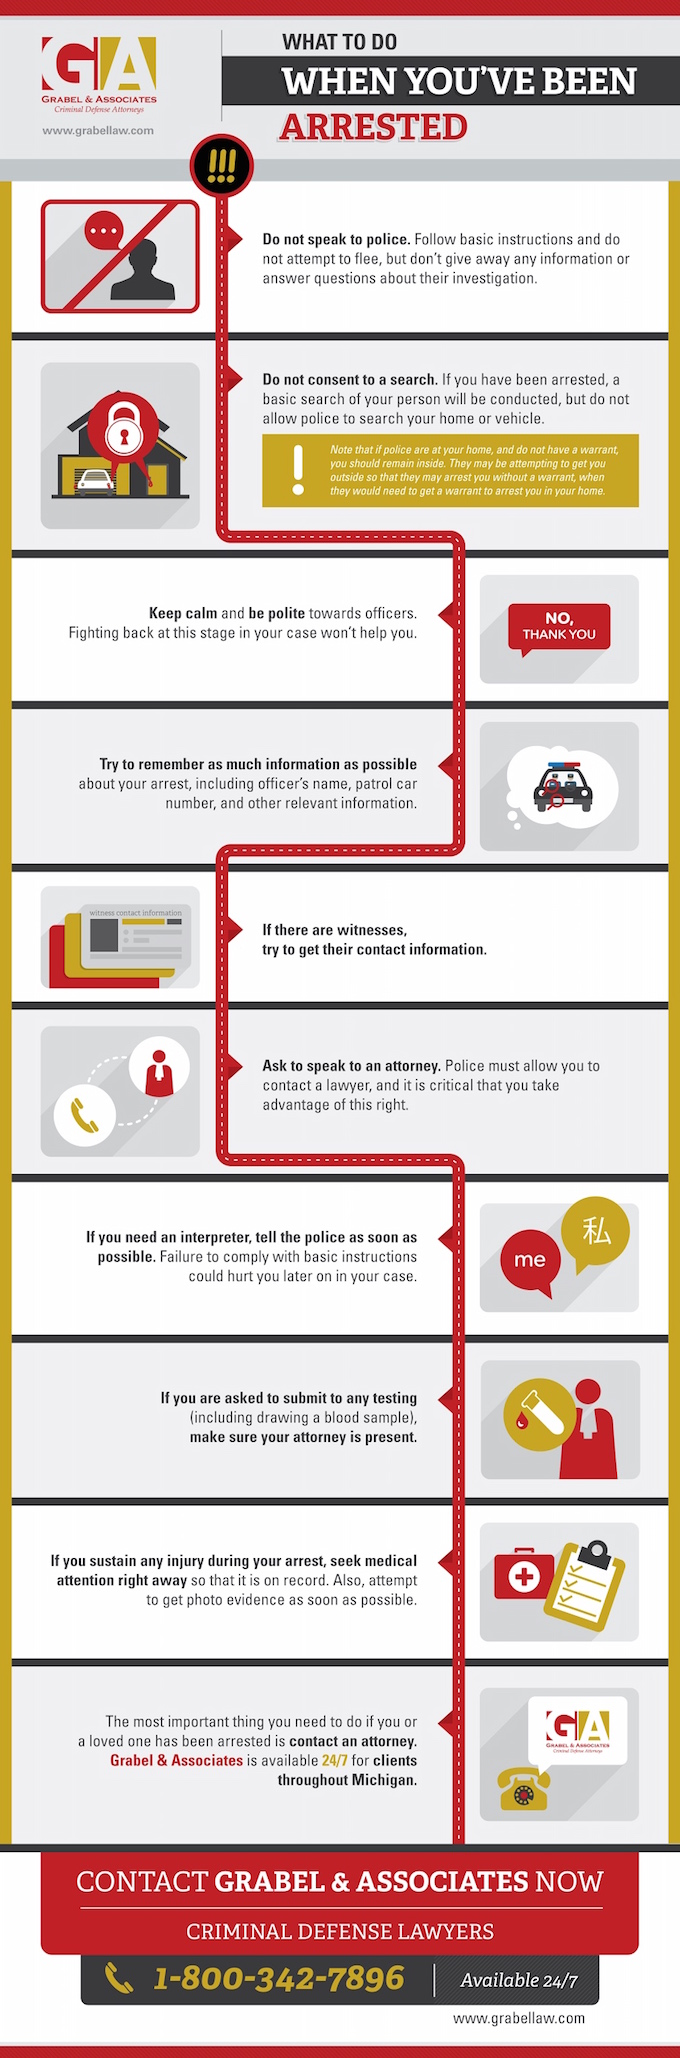 What To Do When You Have Been Arrested infographic